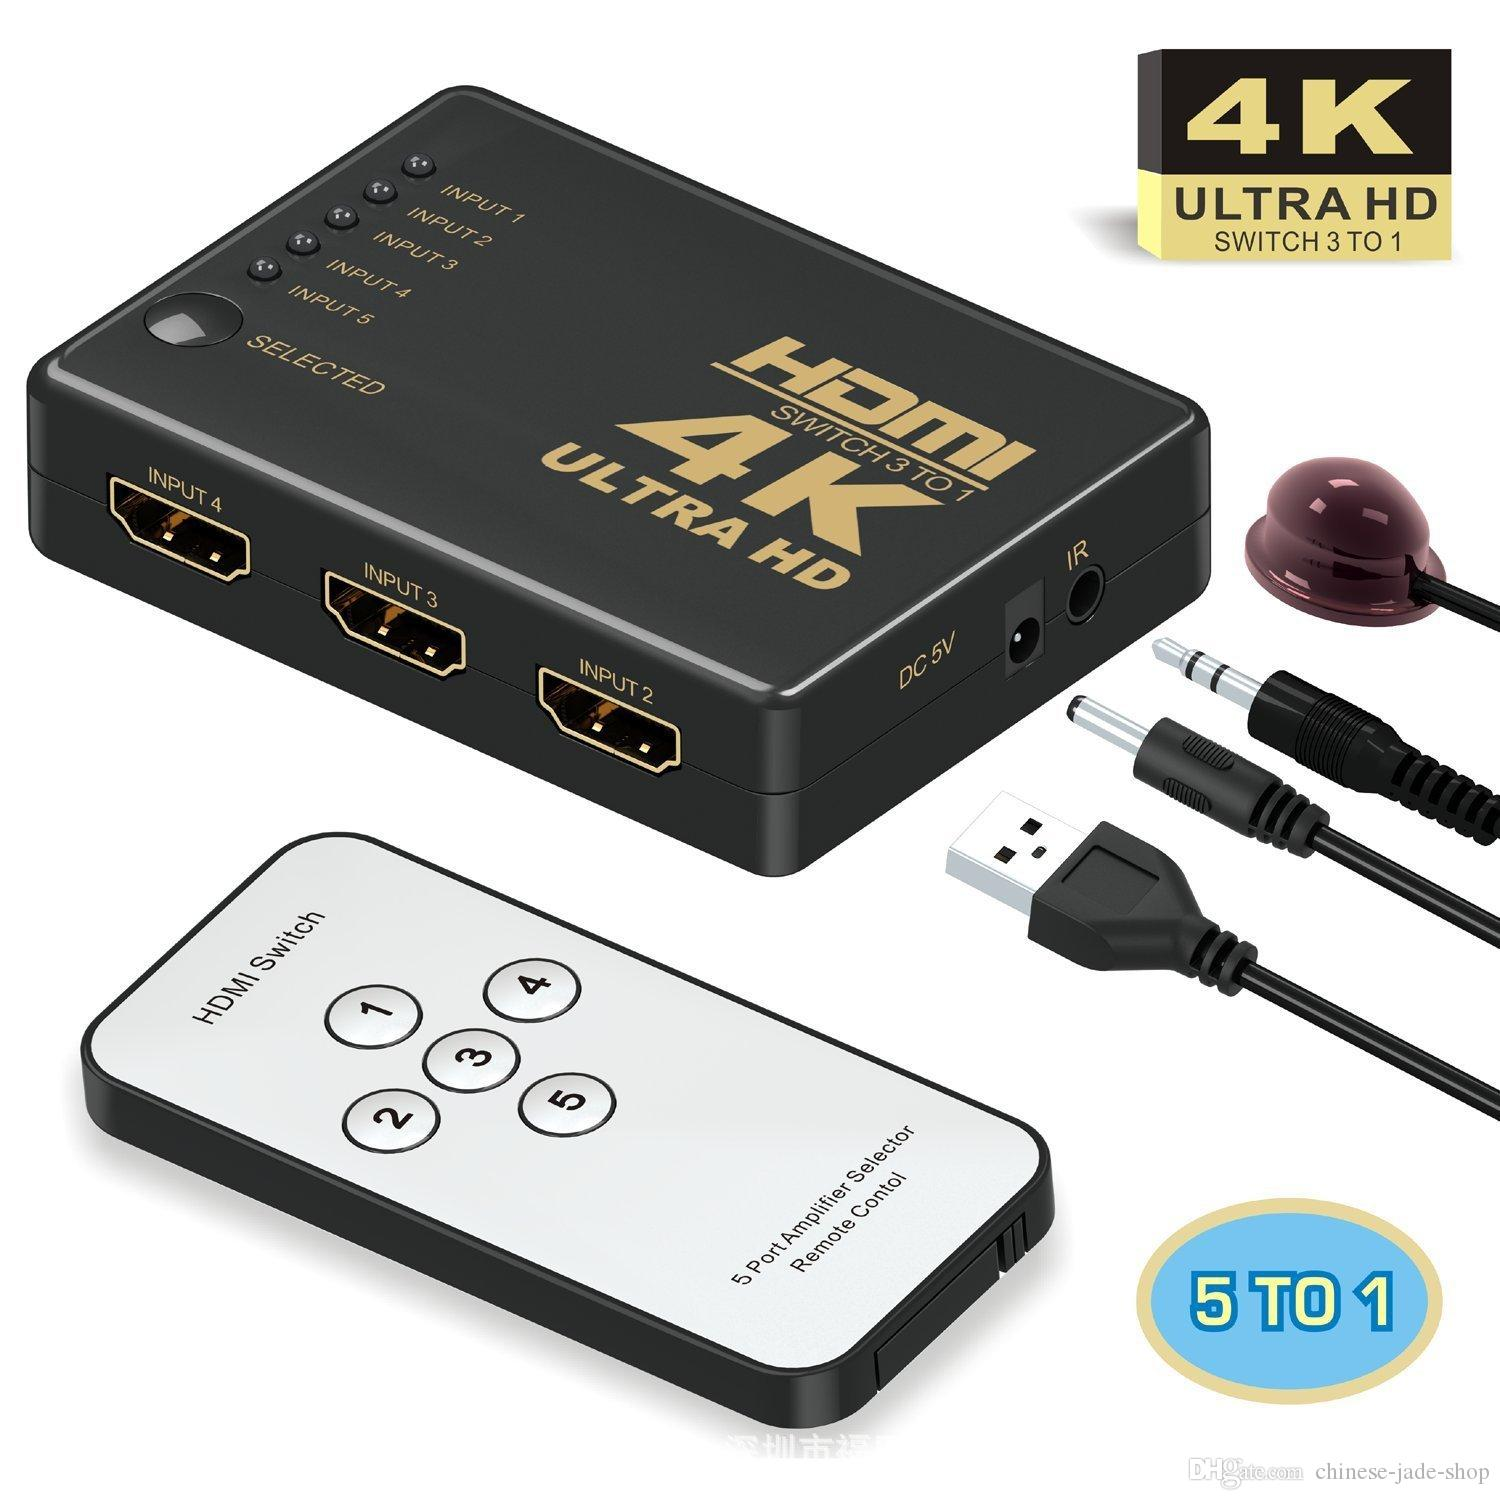 4K*2K 1080p Full HD 5 Port IN 1 3 Port IN 1 OUT HDMI Switch Switcher Hub with Remote Control Splitter Box for Apple HDTV PS4